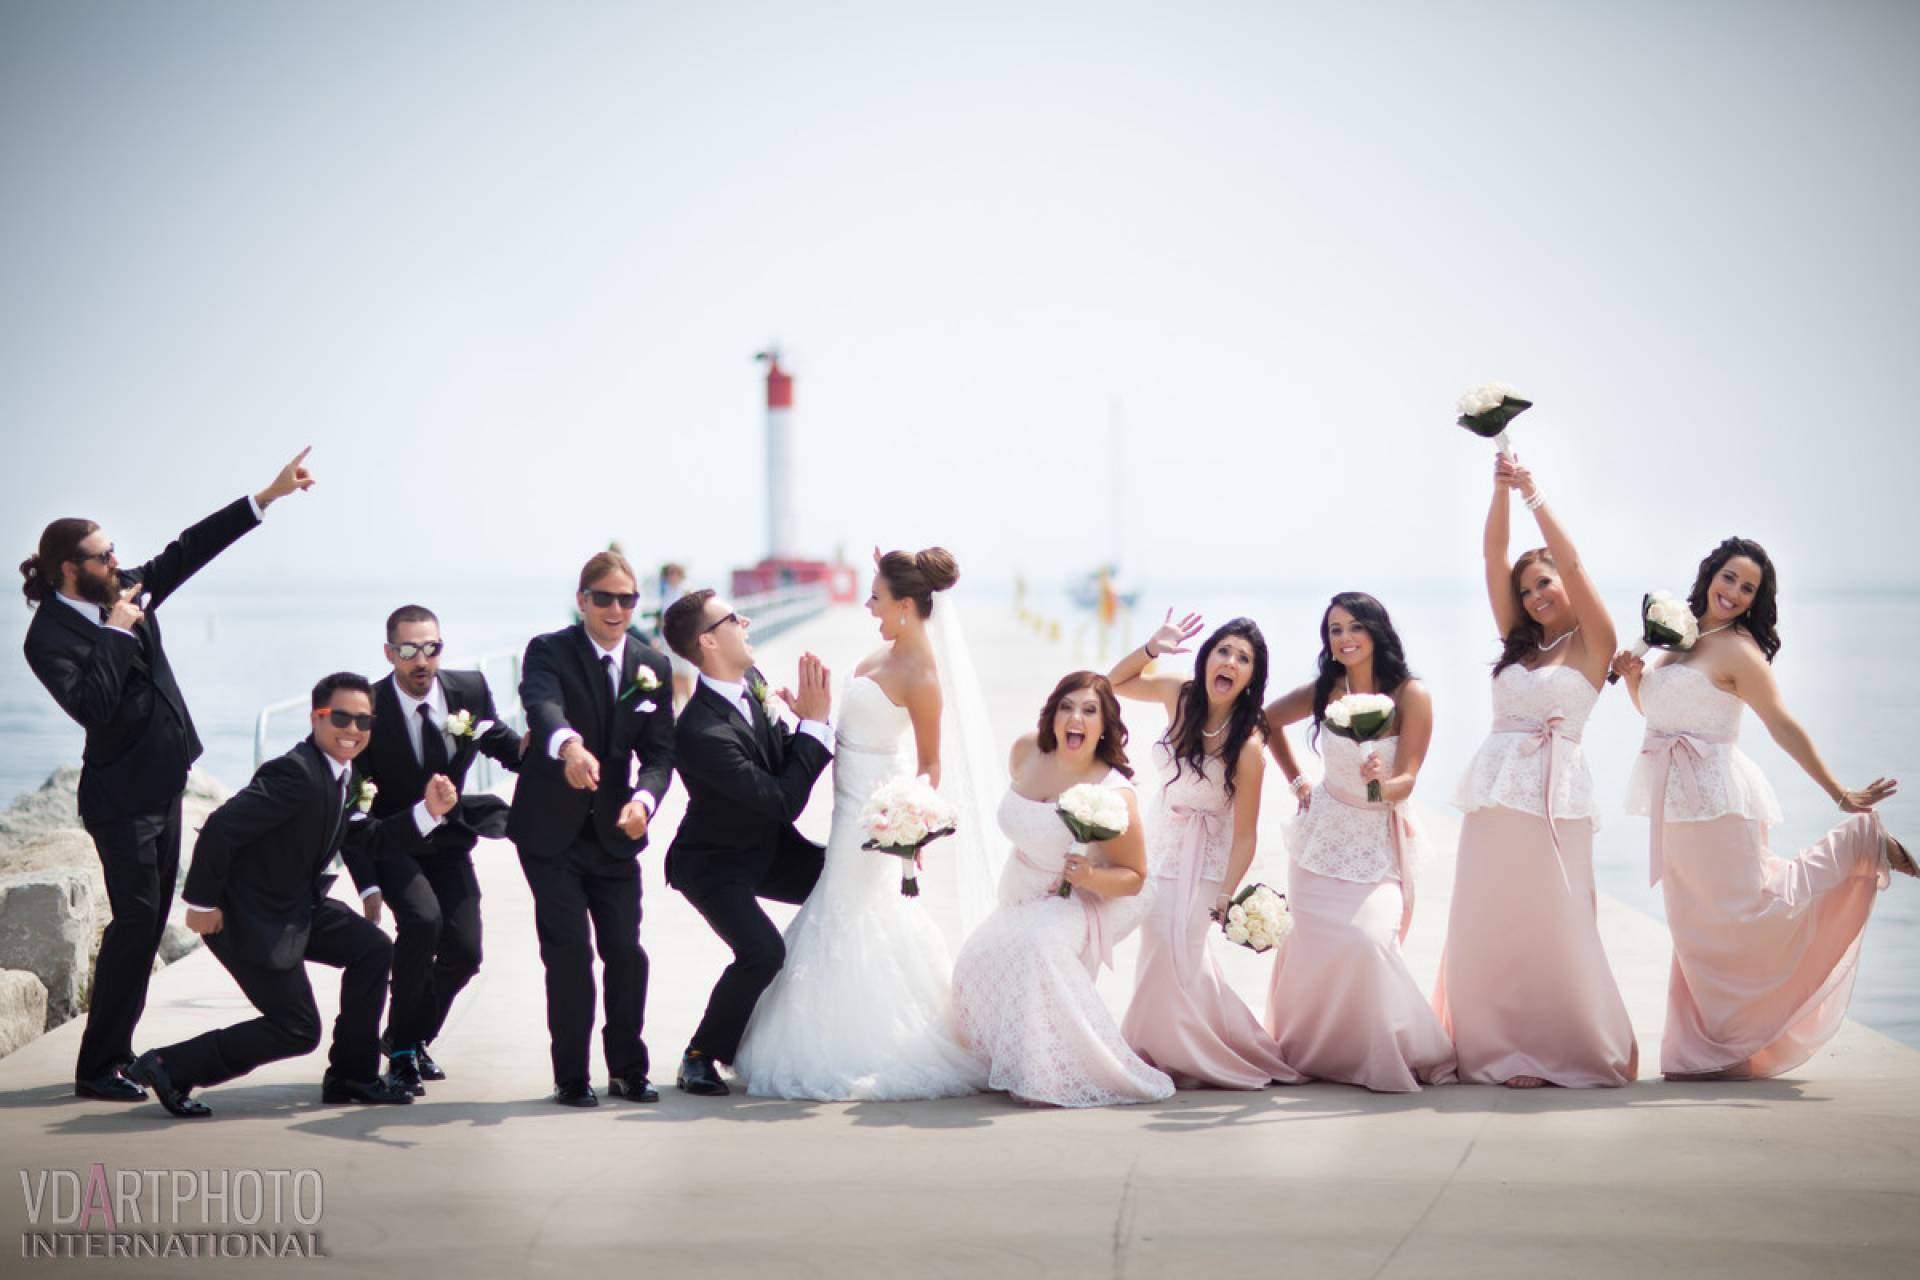 201509/Silvia_Mike_wedding_retouch_0041_jpg.jpg -